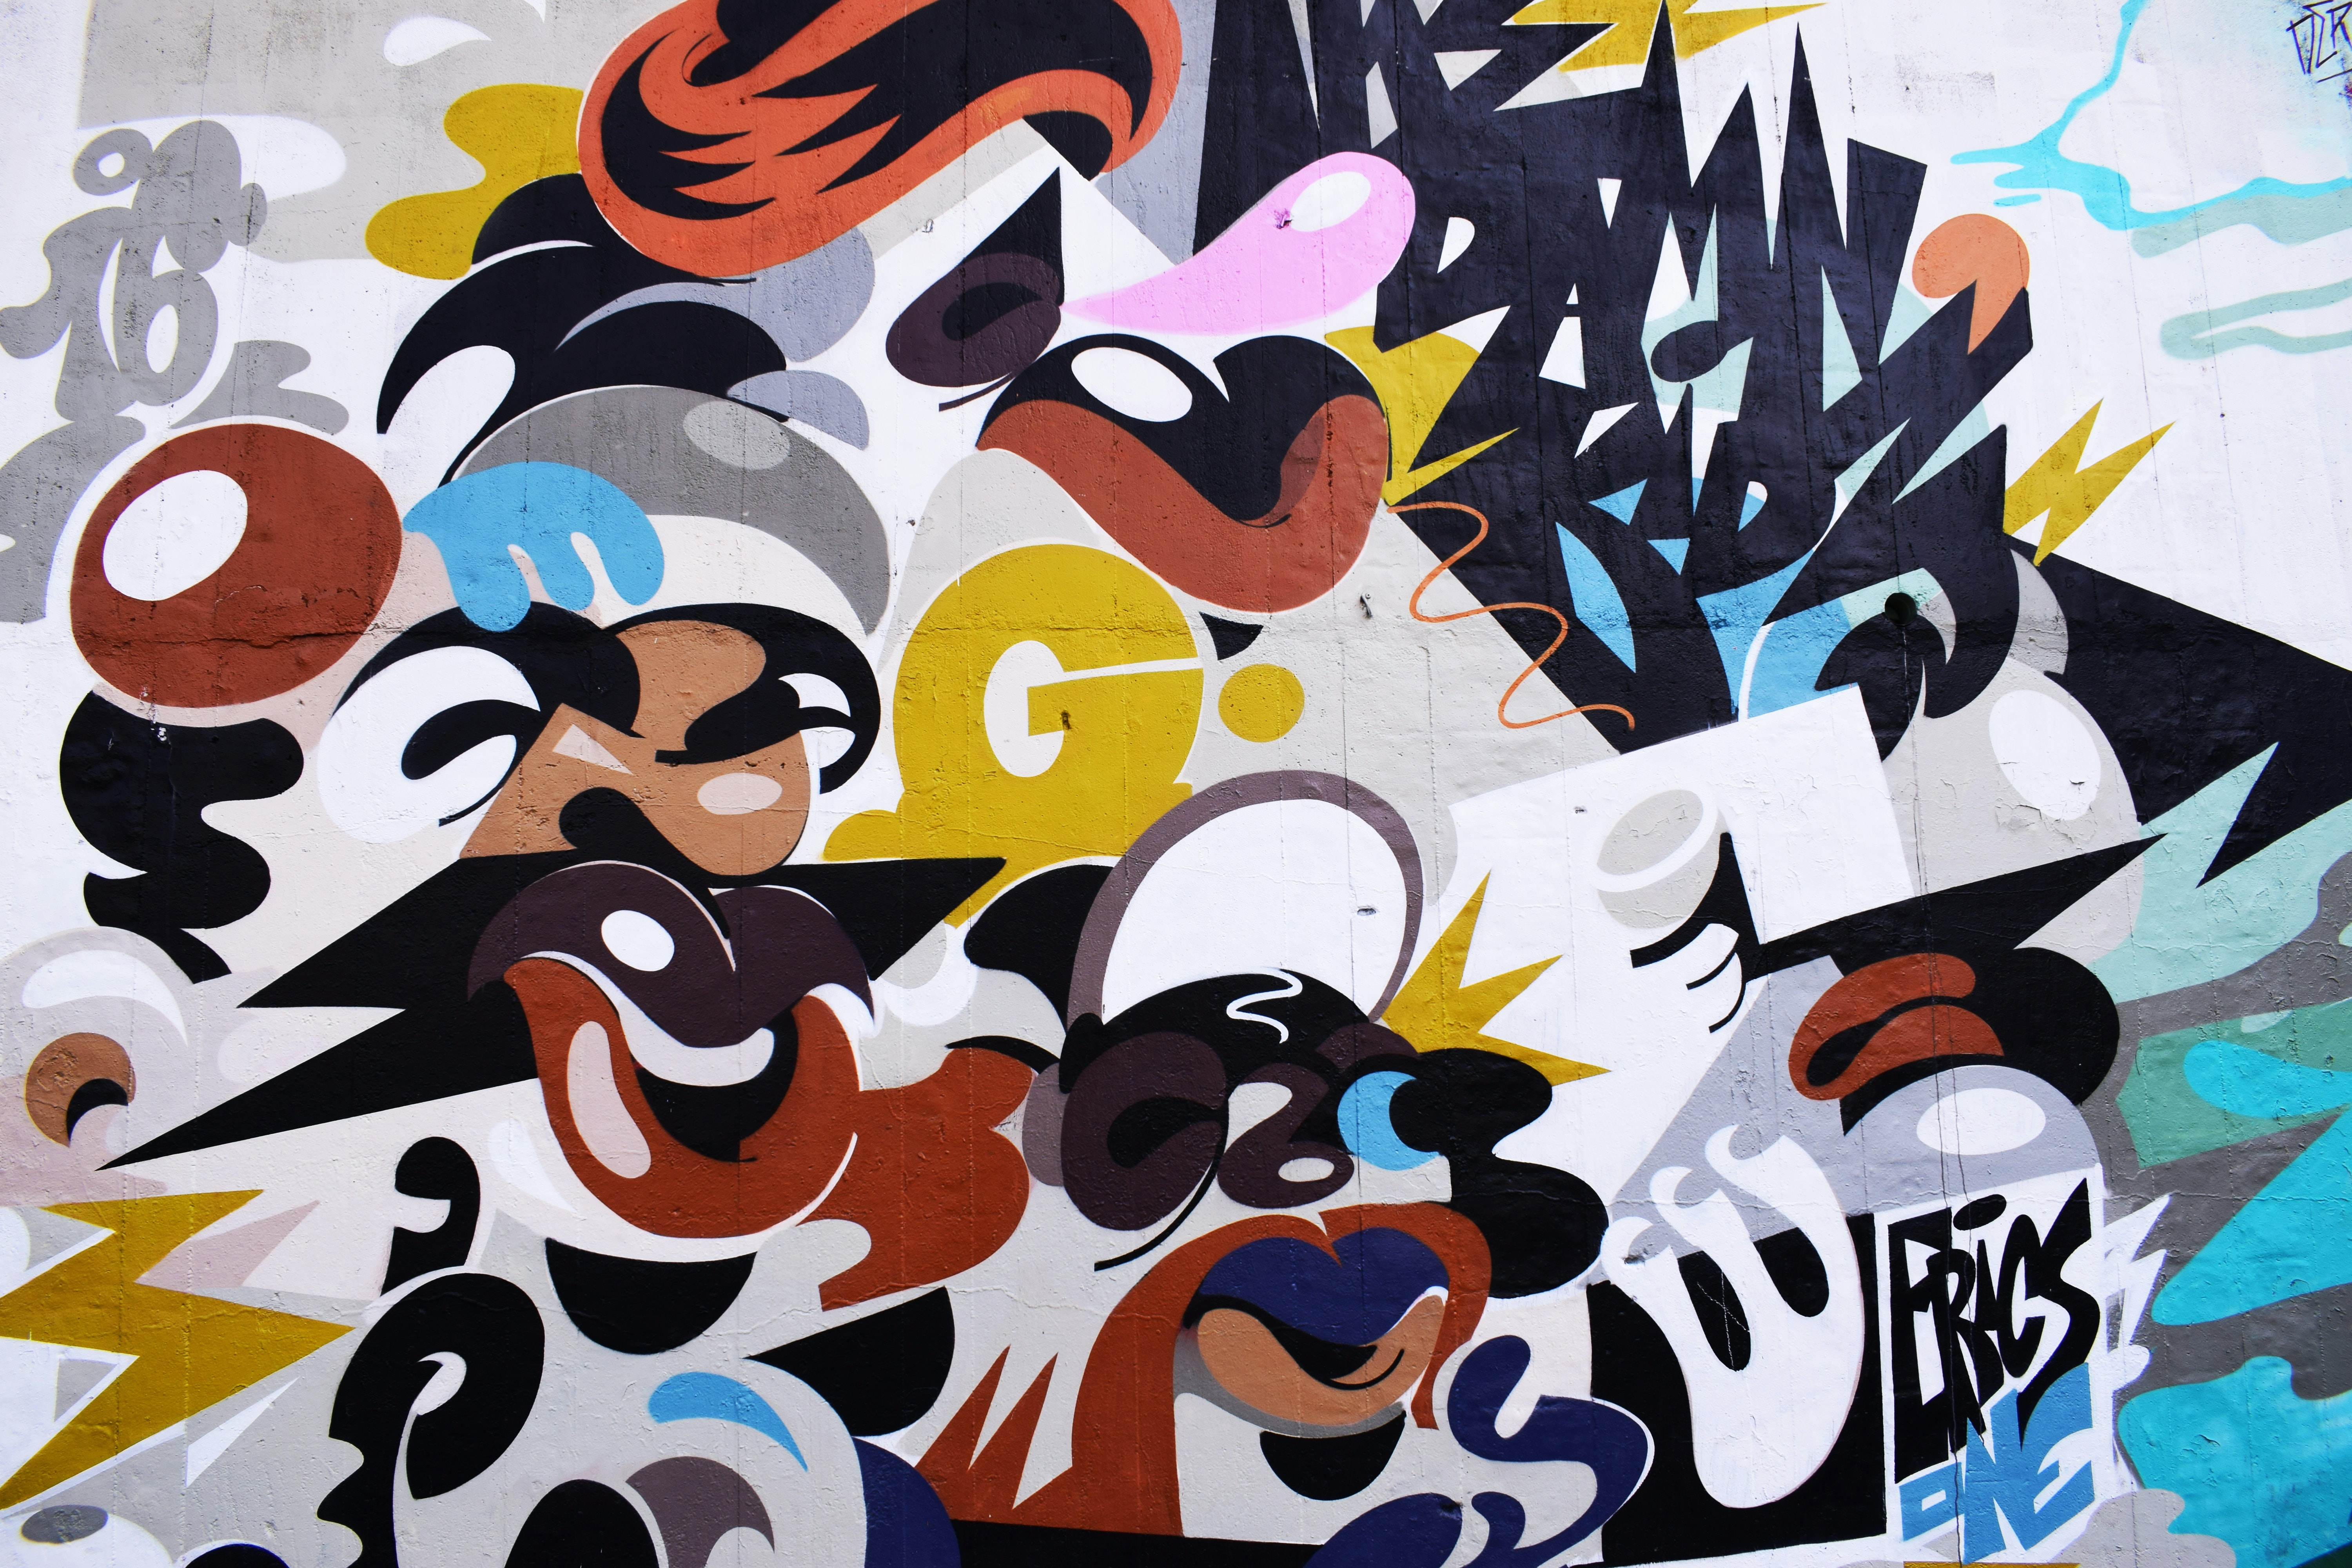 Colorful creative abstract street mural on wall